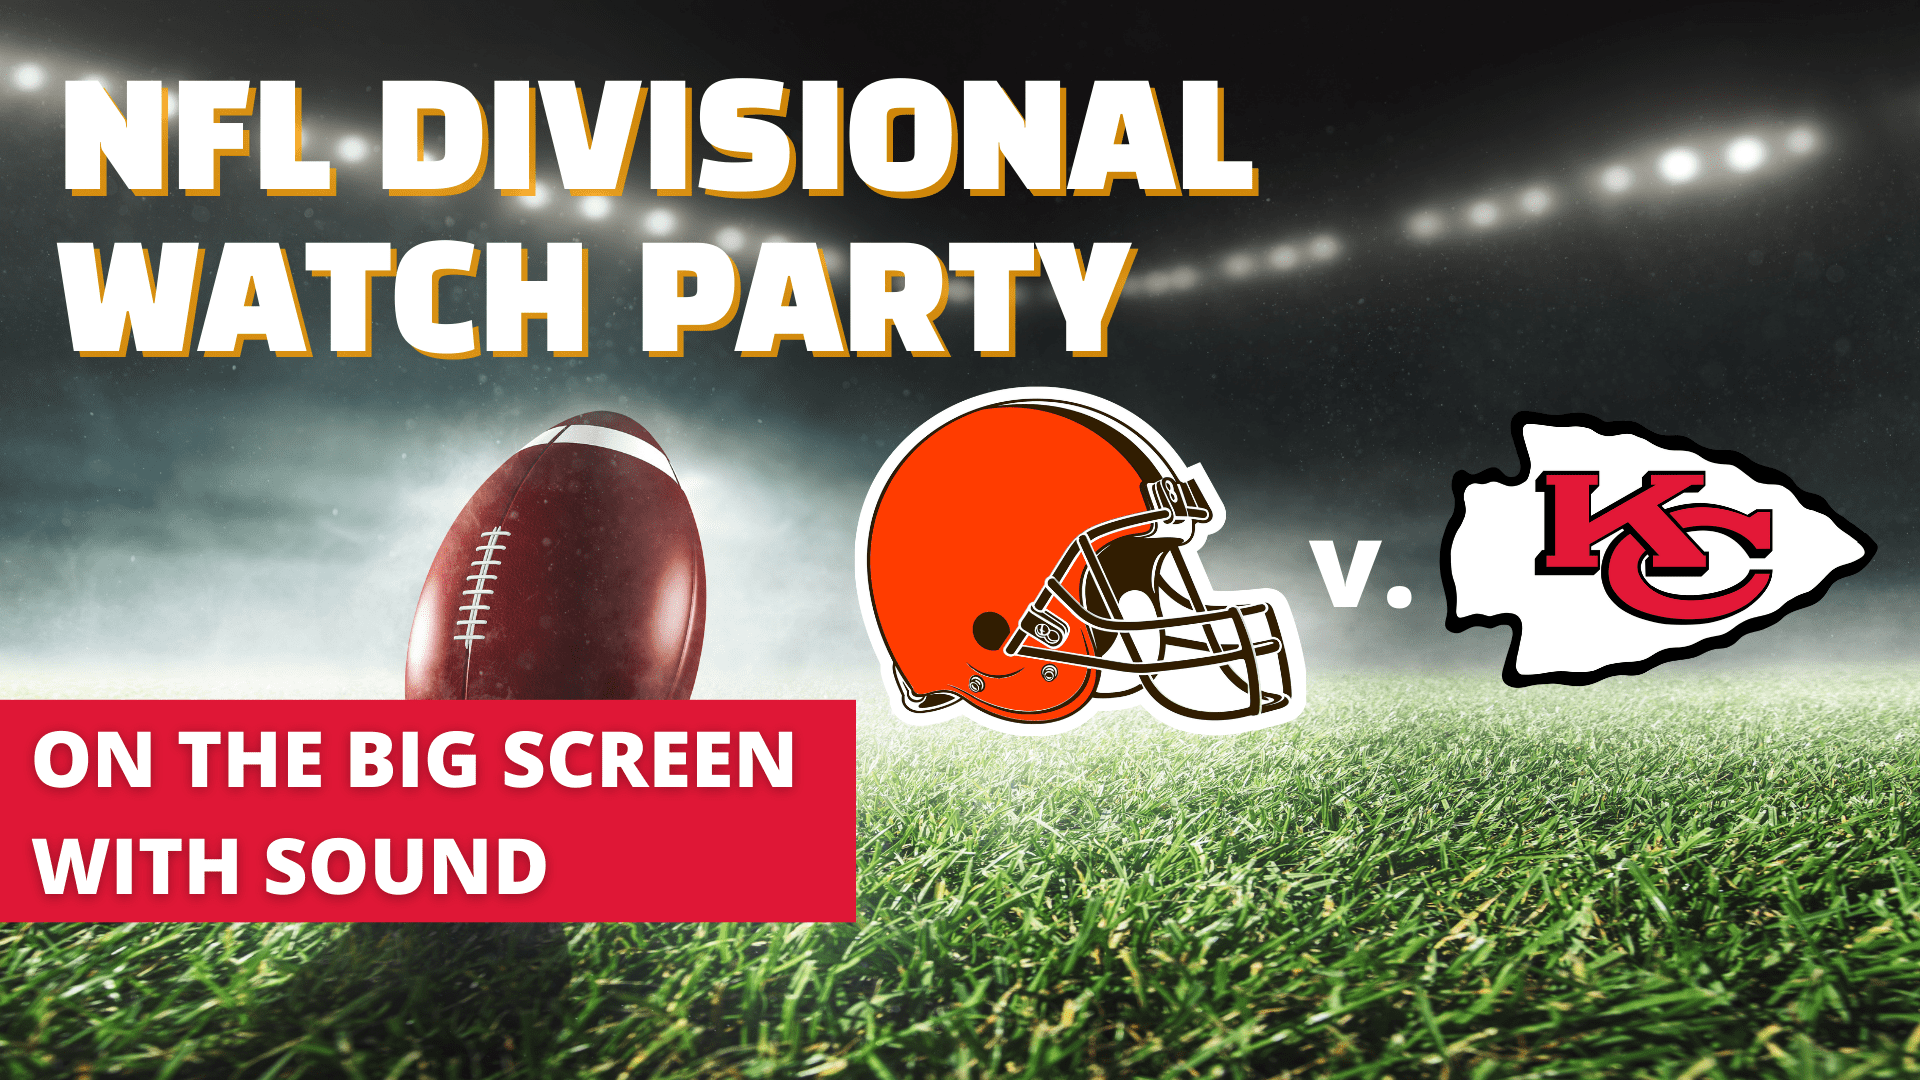 Browns vs. Chiefs Watch Party - hero